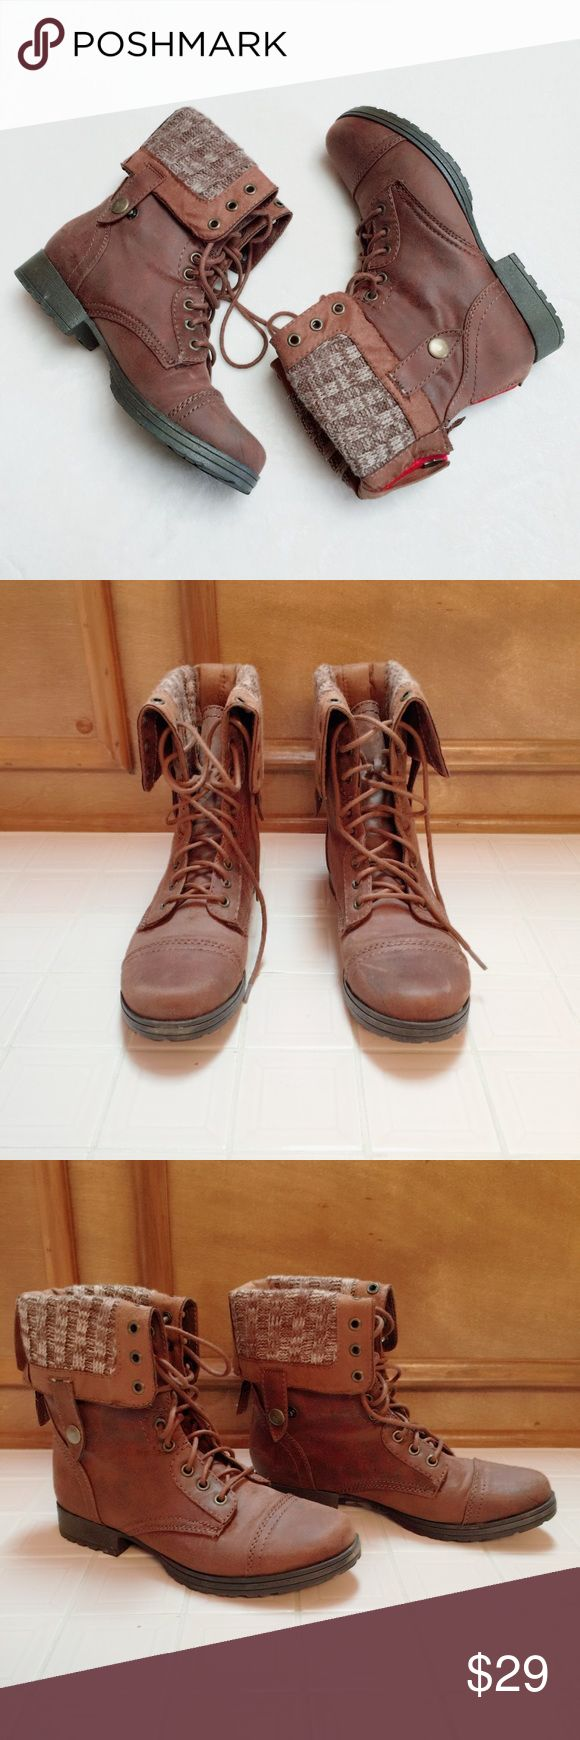 FALLS CREEK LACE UP BOOTIE 8 FALLS CREEK LACE UP BOOTIE 8. EXCELLENT CONDITION. WORN ONCE OR TWICE. LACE UP OR USE ZIPPER TO SLIDE IN AND OUT OF THIS GREAT BOOTIE. ADJUSTABLE SNAPS TO ADJUST THE HEIGHT OF THE BOOTIE. FALLS CREEK Shoes Lace Up Boots